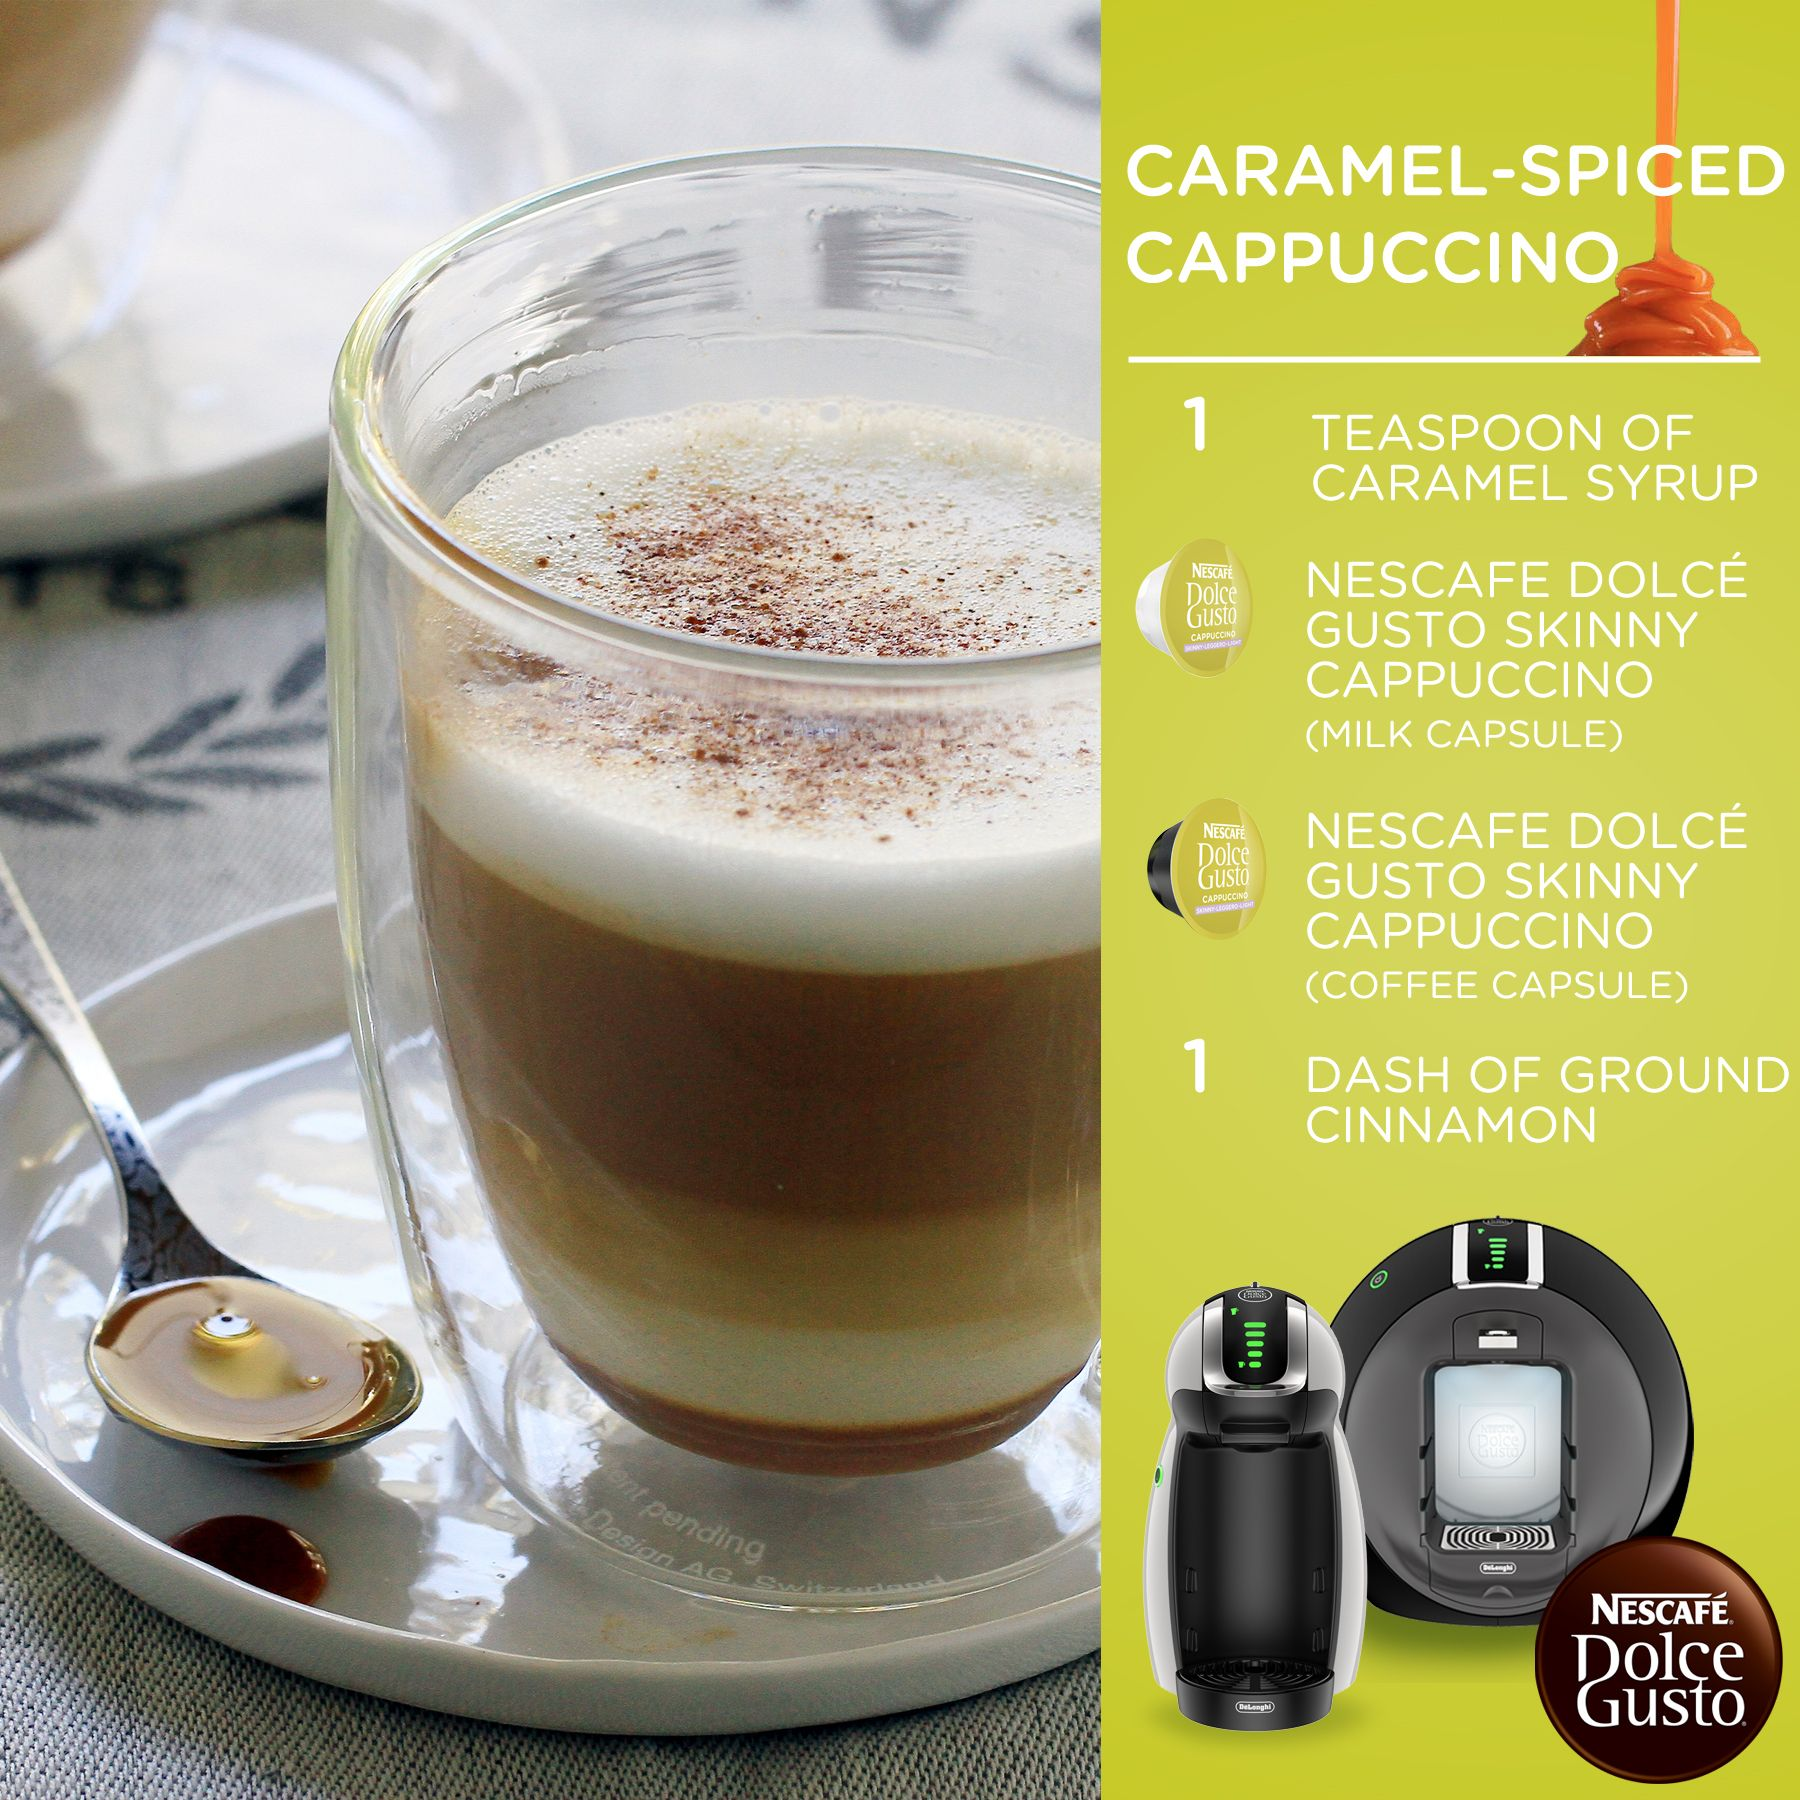 Dolce Gusto Caramel Spiced Cappuccino Sweet And Satisfying Use The Nescafe Dolce Gusto Circolo By Delonghi T Dolce Gusto Nescafe Dolce Gusto Tragos Licuados